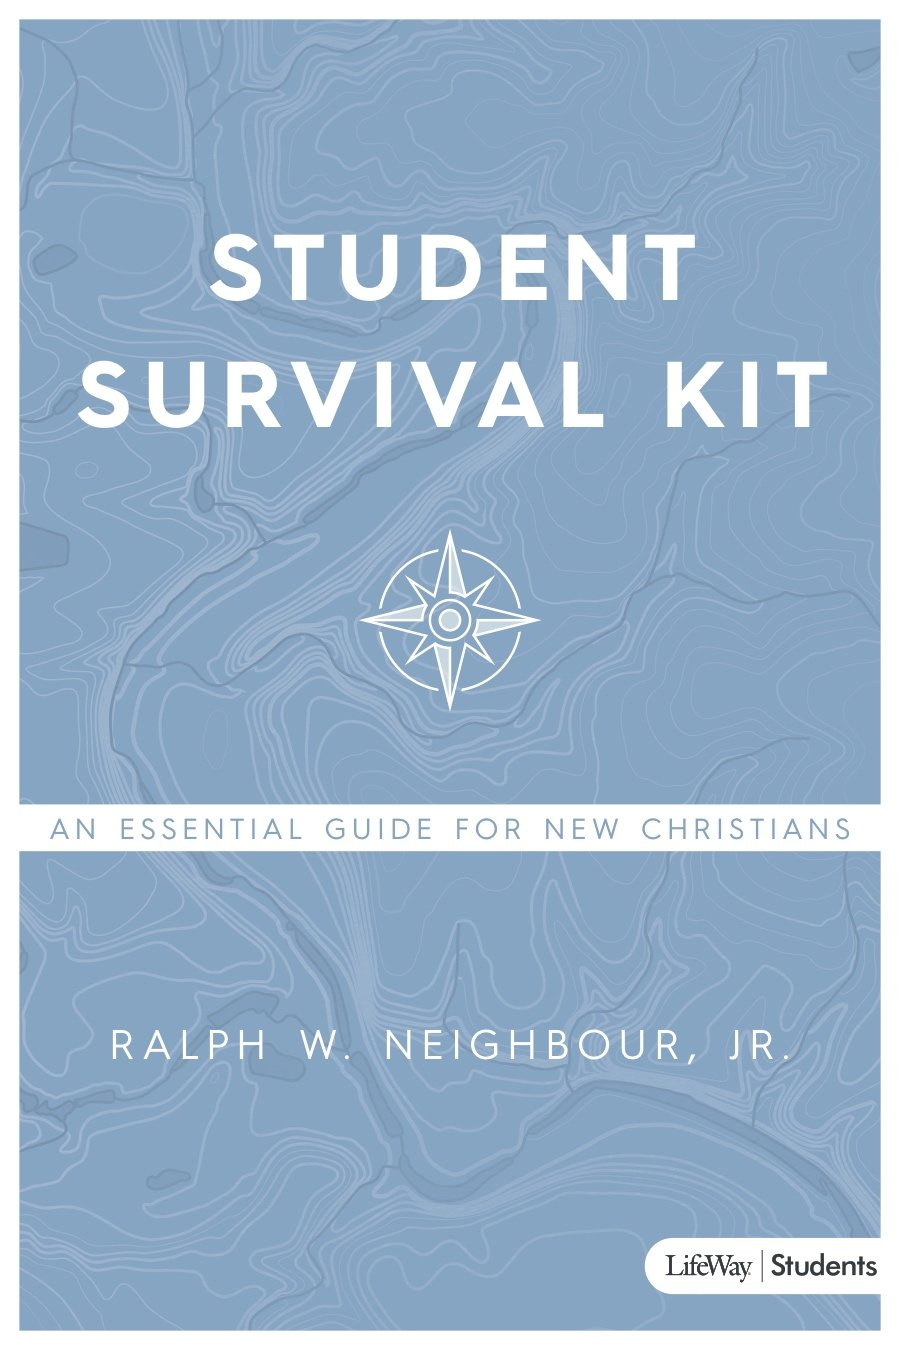 Student Survival Kit: An Essential Guide for New Christians ebook